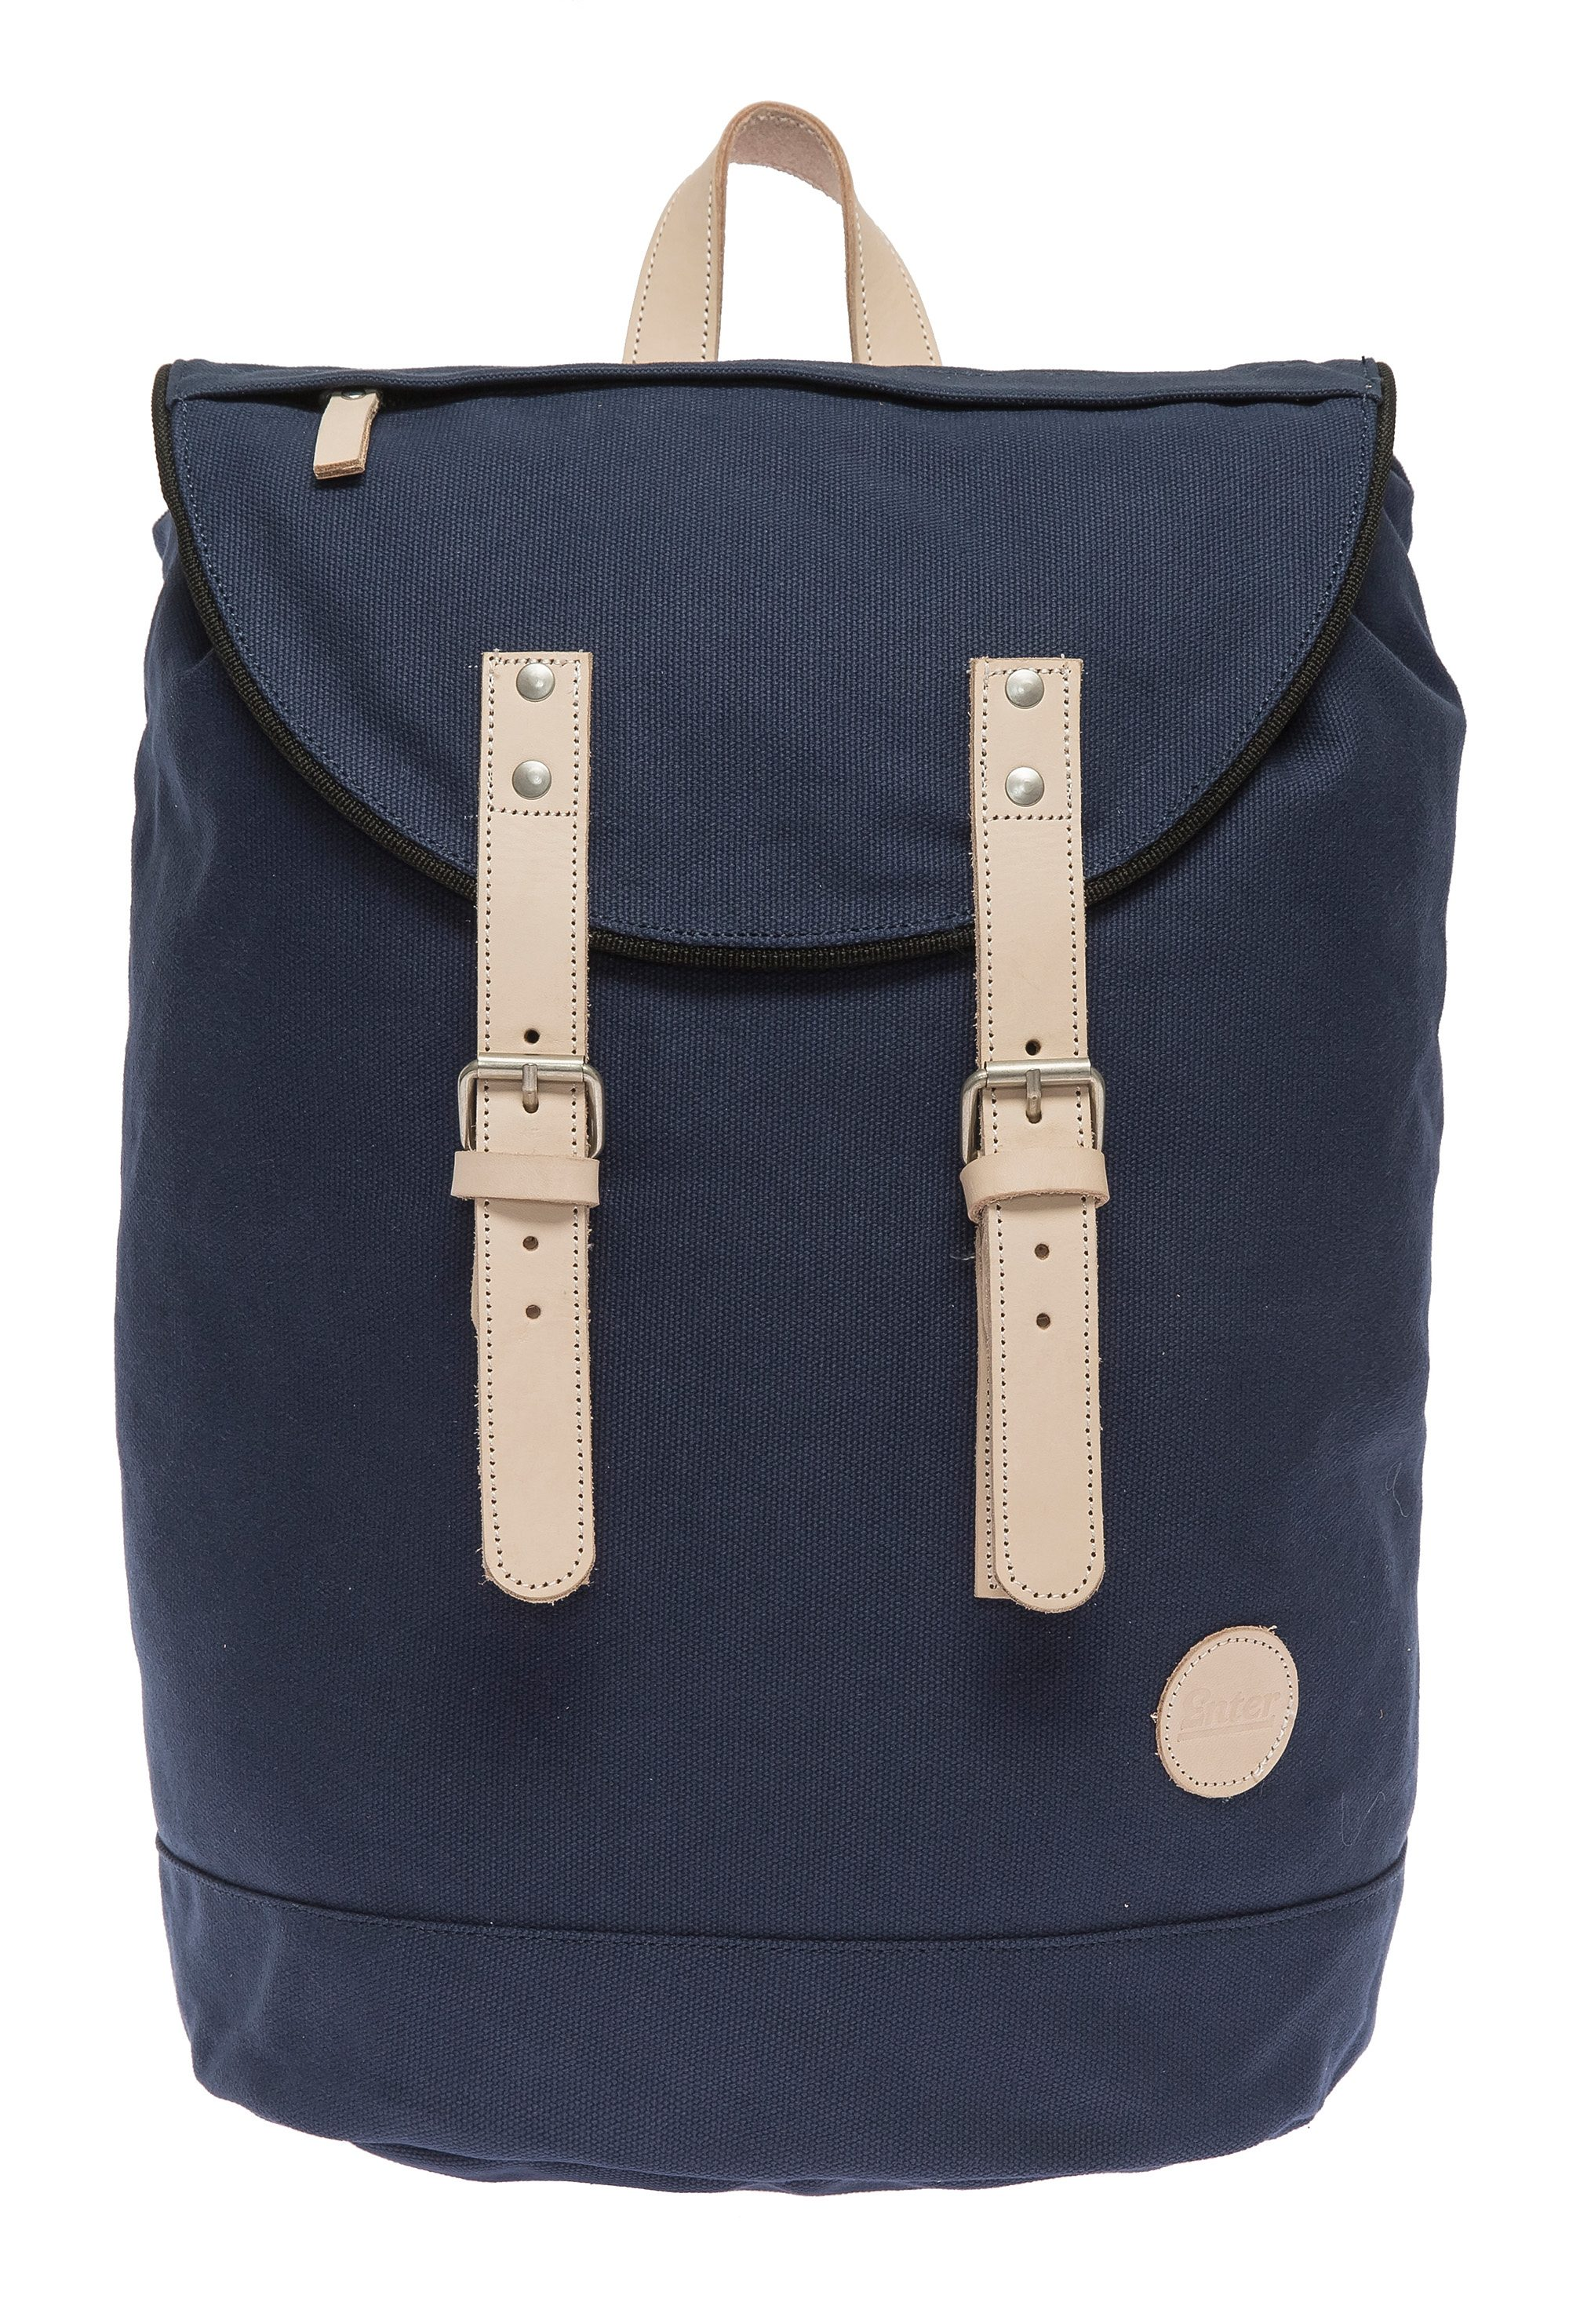 Enter Rucksack mit Echtleder-Applikationen, »Day Hiker Bag, Navy/Natural«